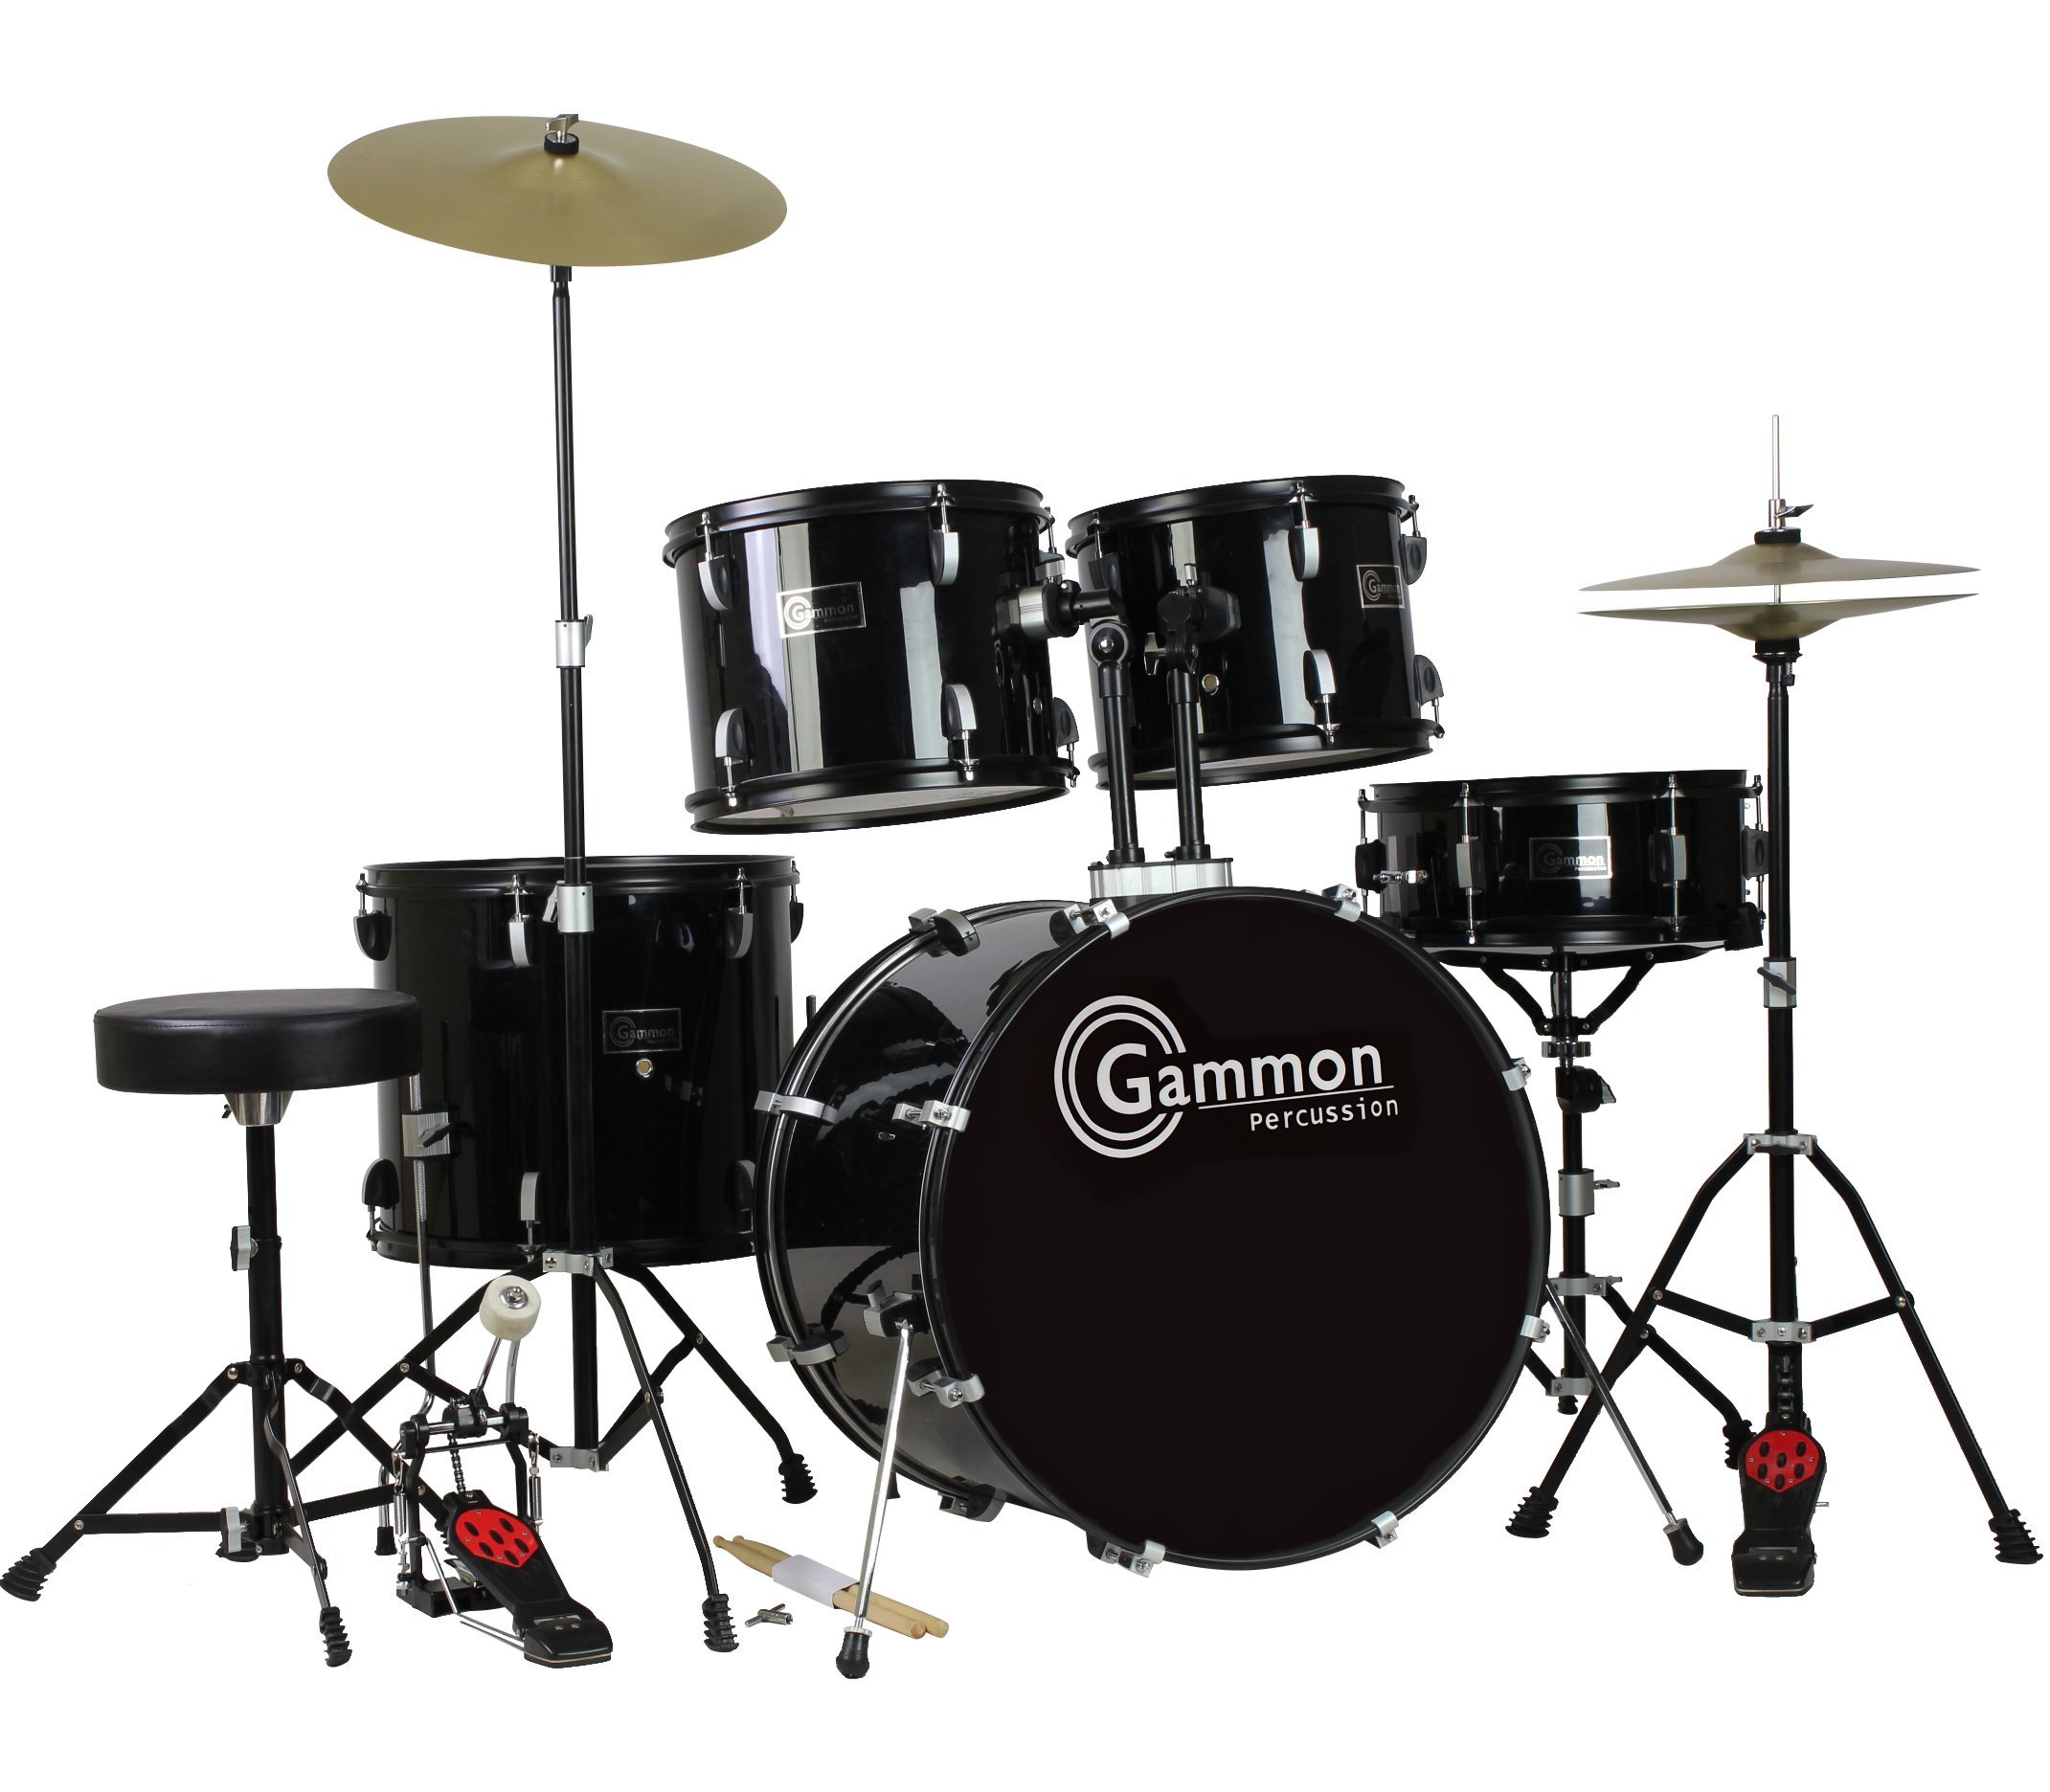 Gammon Percussion Full Size Complete Adult 5 Piece Drum Set with Cymbals Stands Stool and Sticks, Black by Gammon Percussion (Image #9)